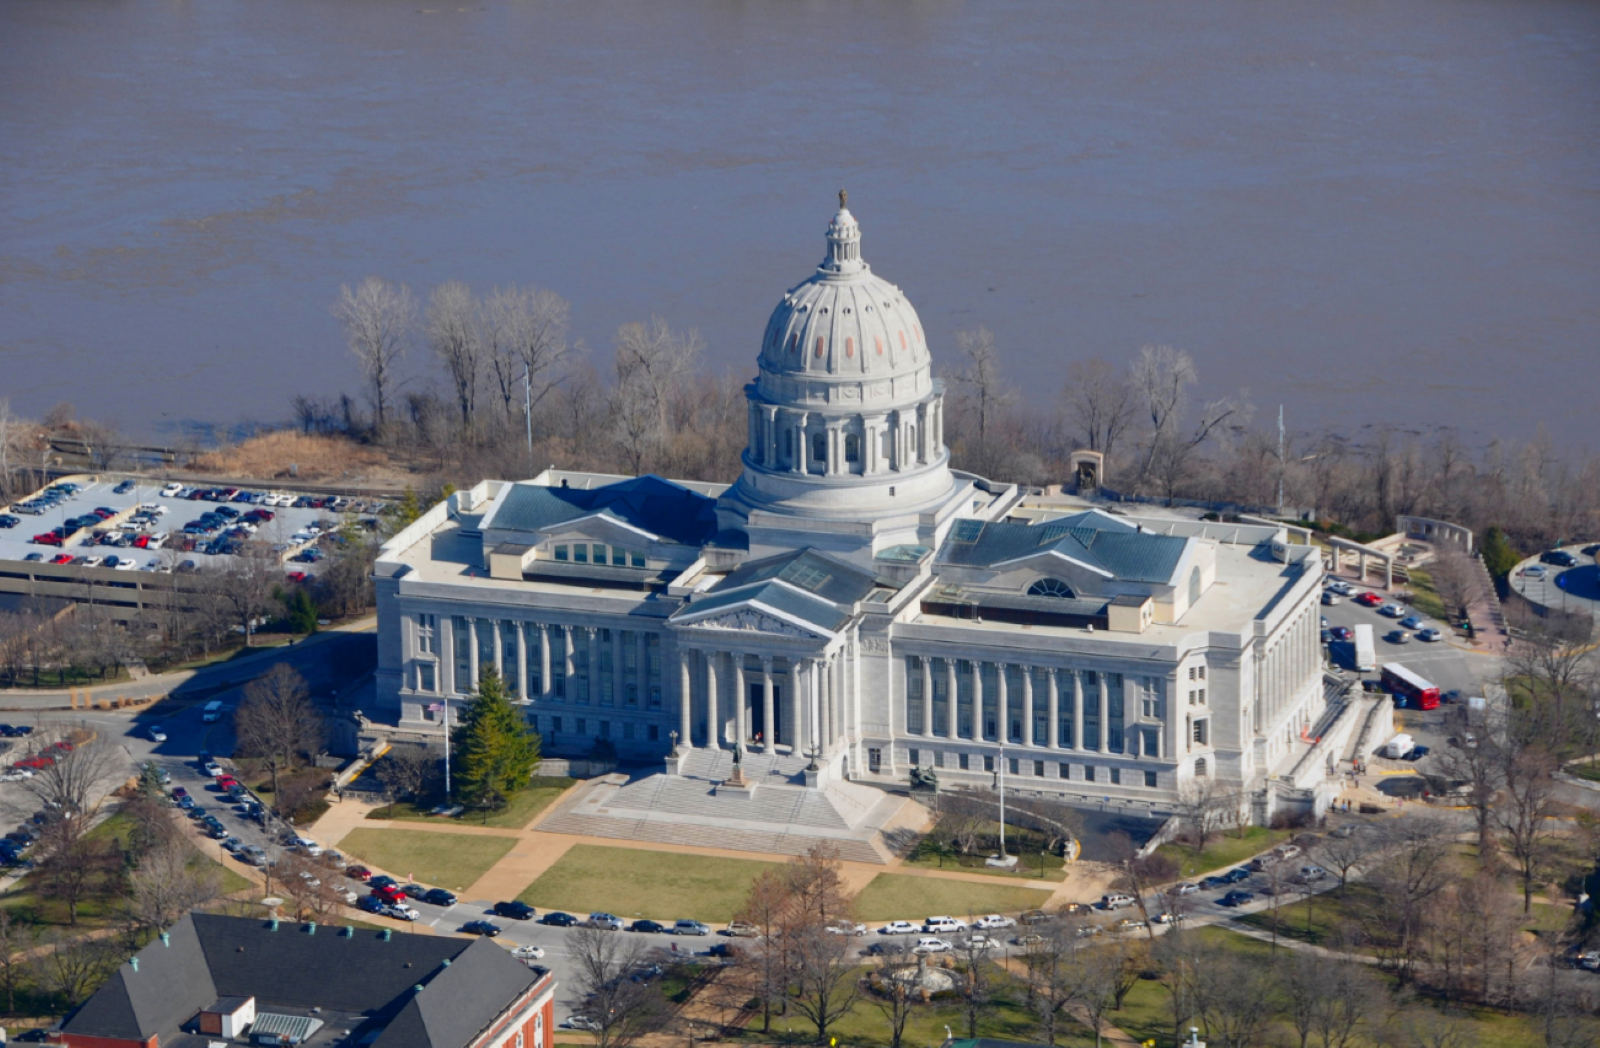 Ariel View of the Capital Building of Missouri in Jefferson City along the Missouri River